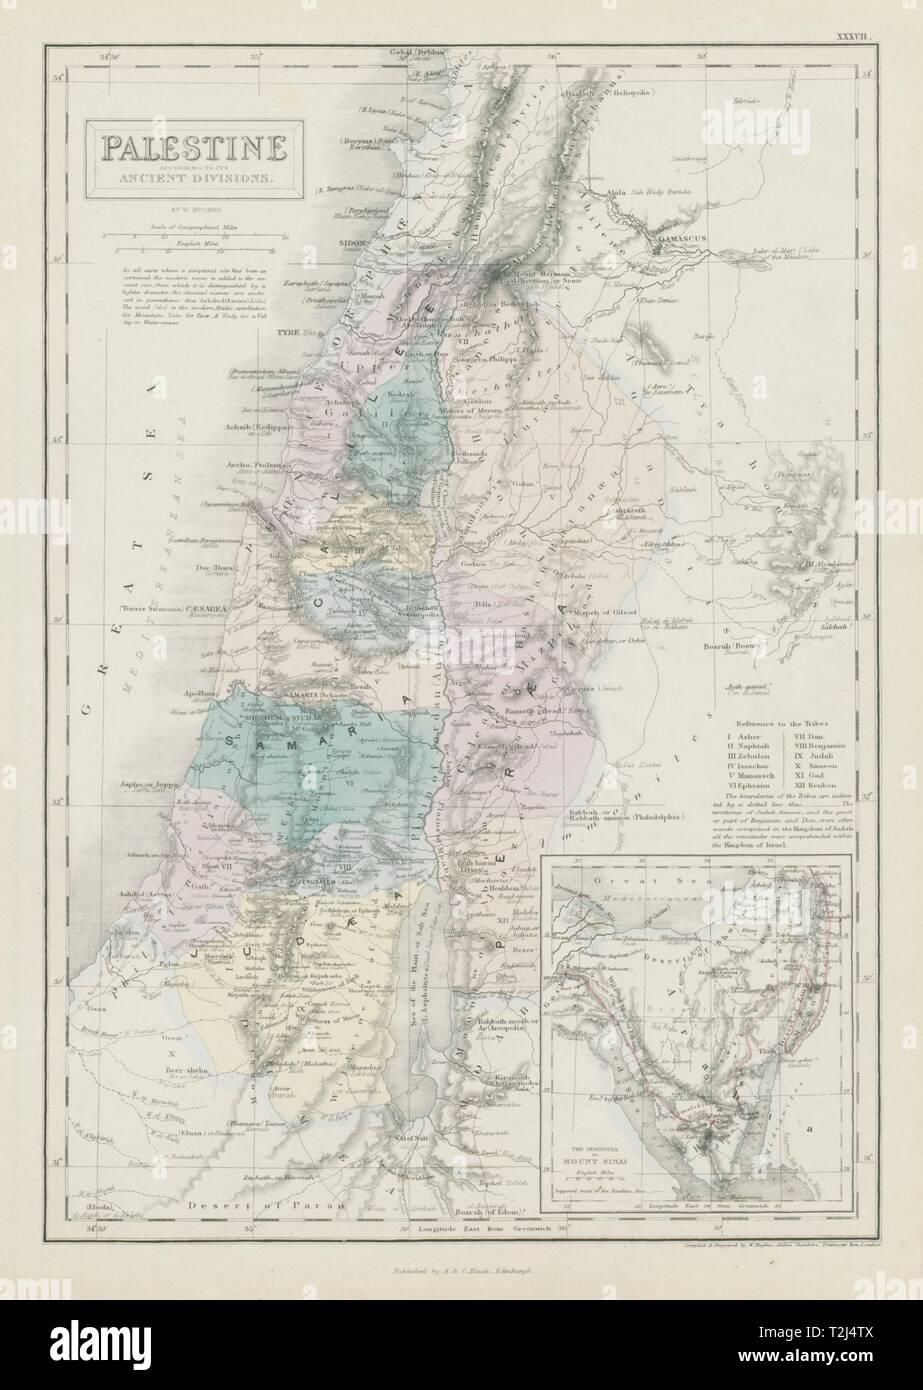 Palestine with its ancient divisions. Inset Sinai peninsula ...